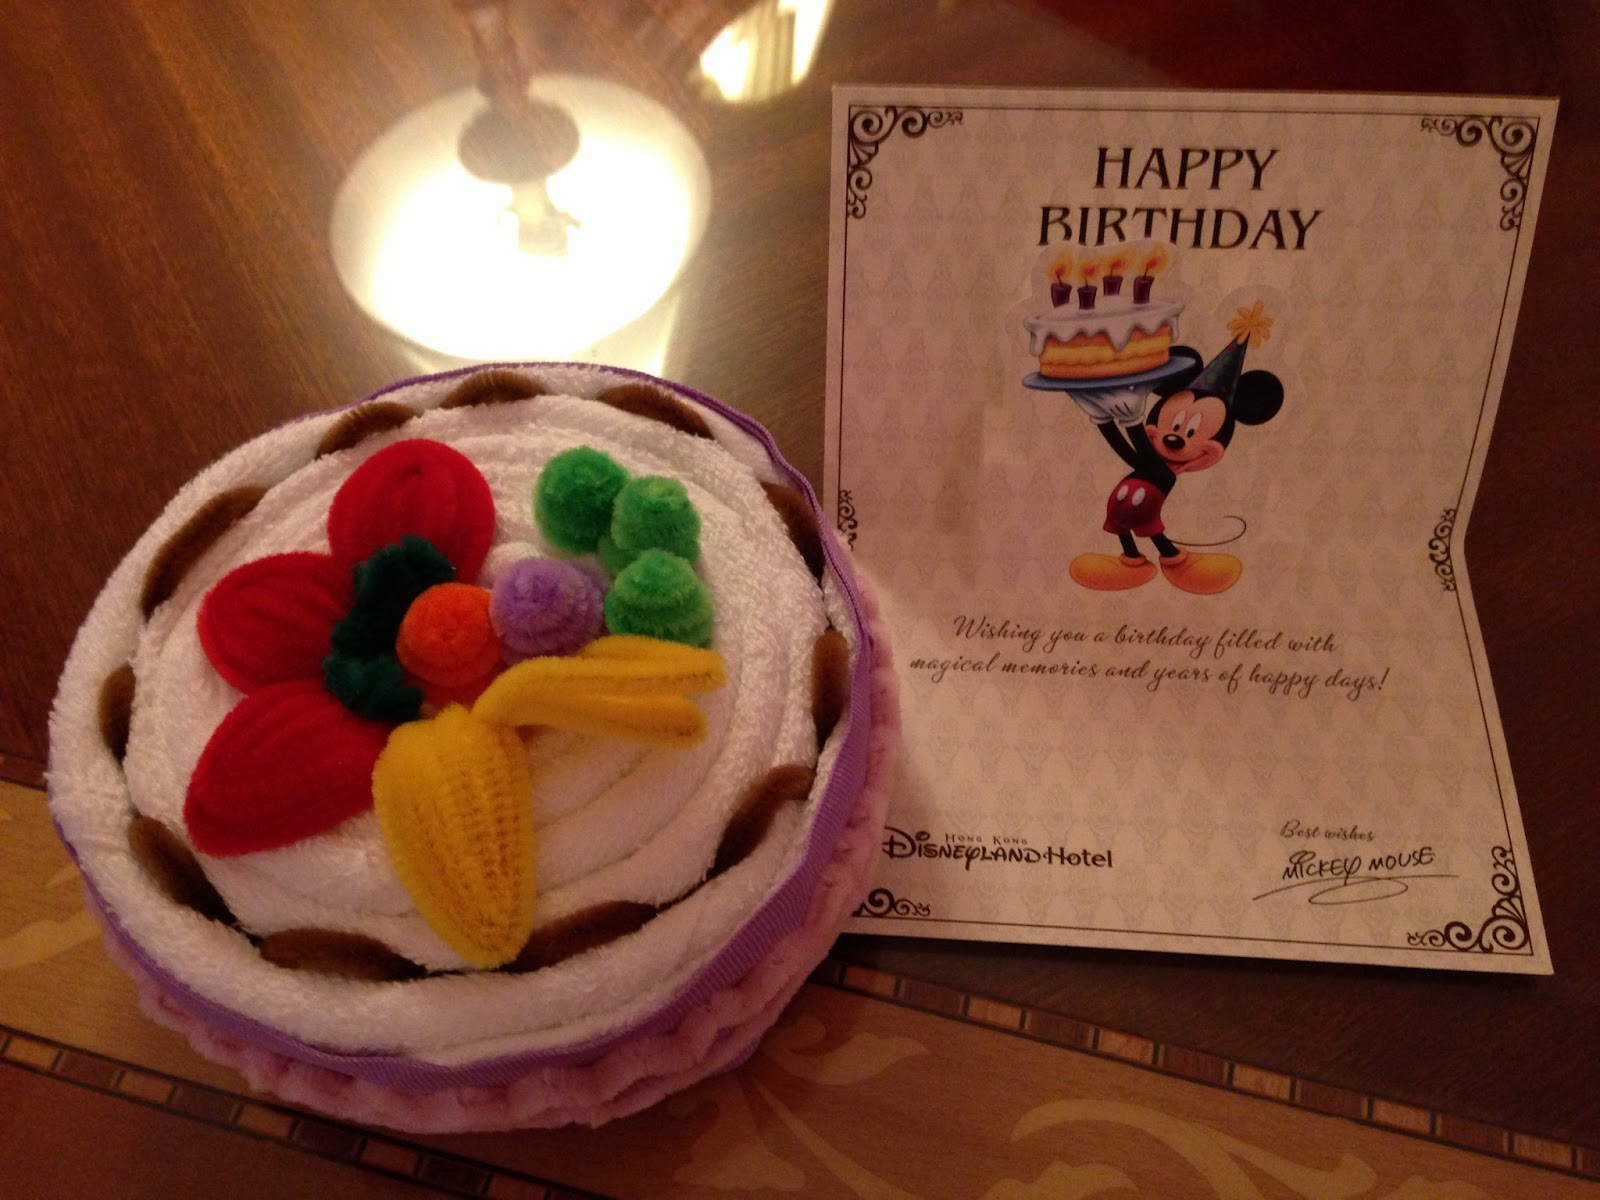 A Magical Birthday Celebration At Hong Kong Disneyland